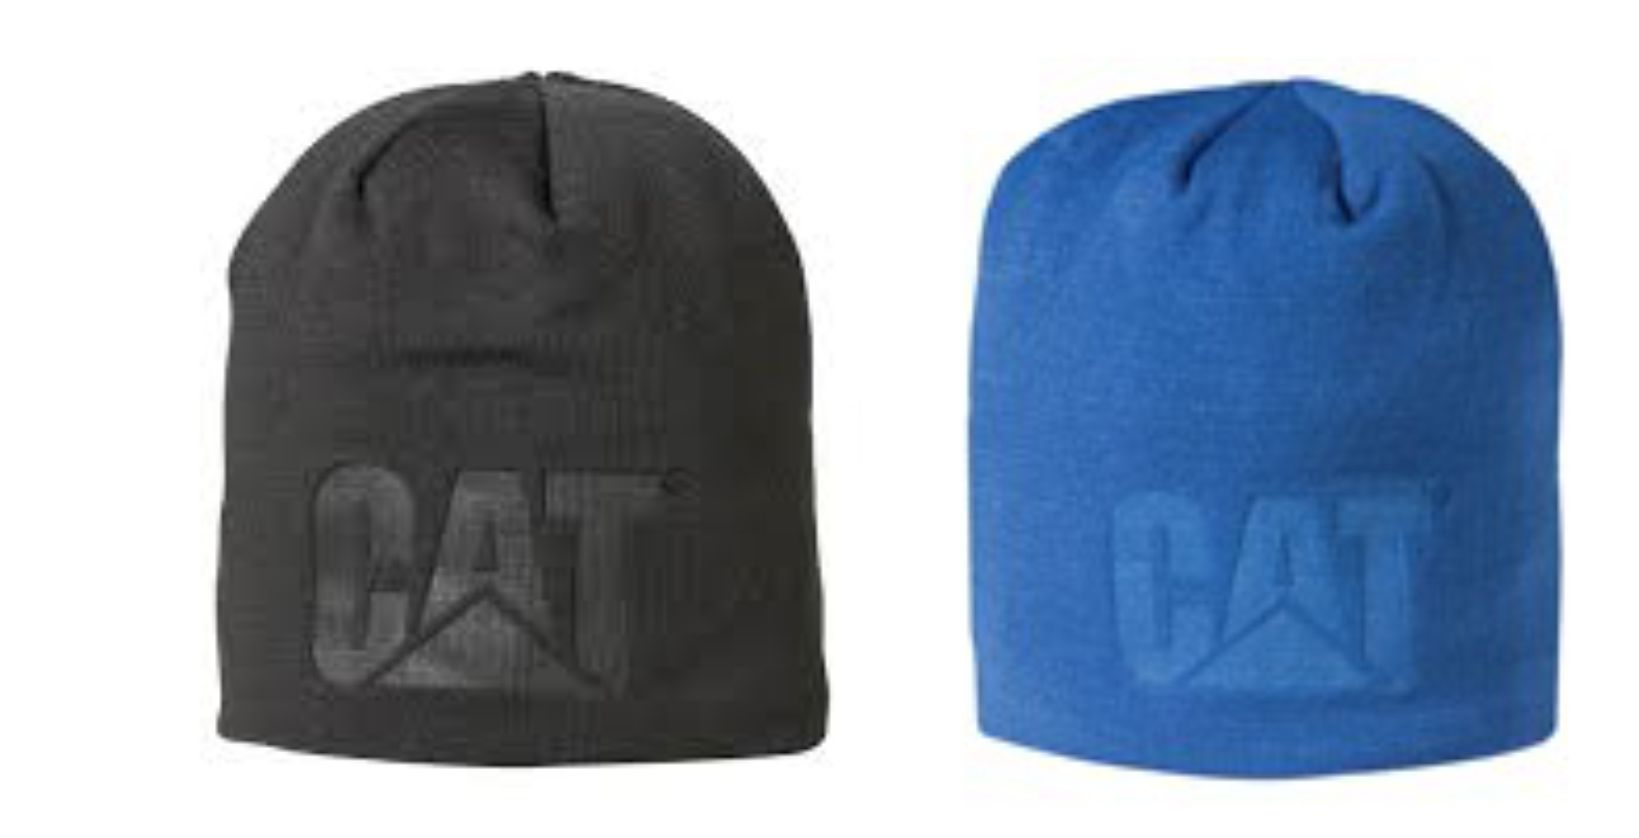 CAT 128097 Trademark Knit Cap